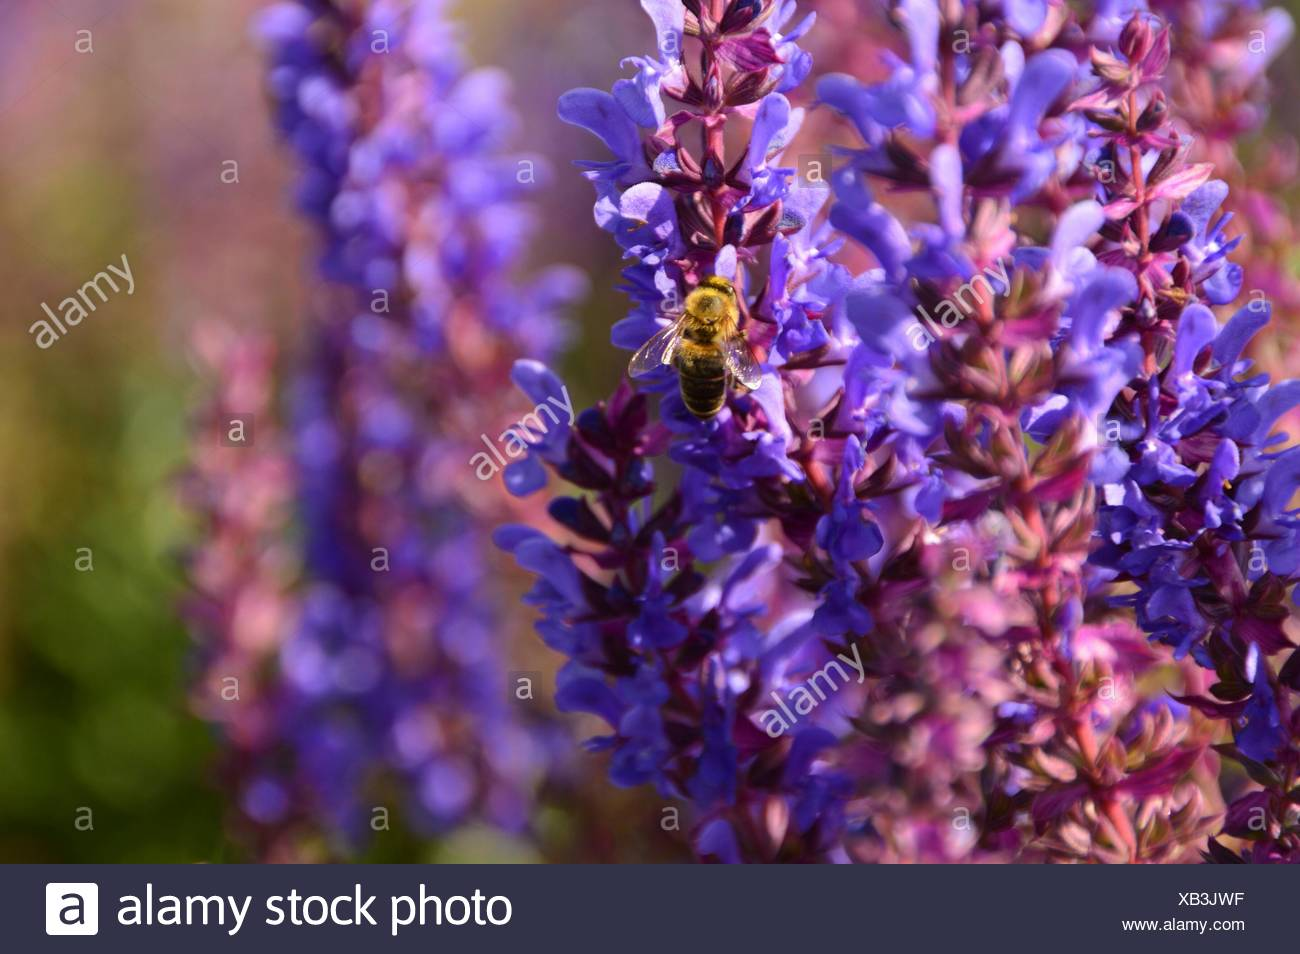 Close-Up Of Honey Bee On Flower Plants - Stock Image